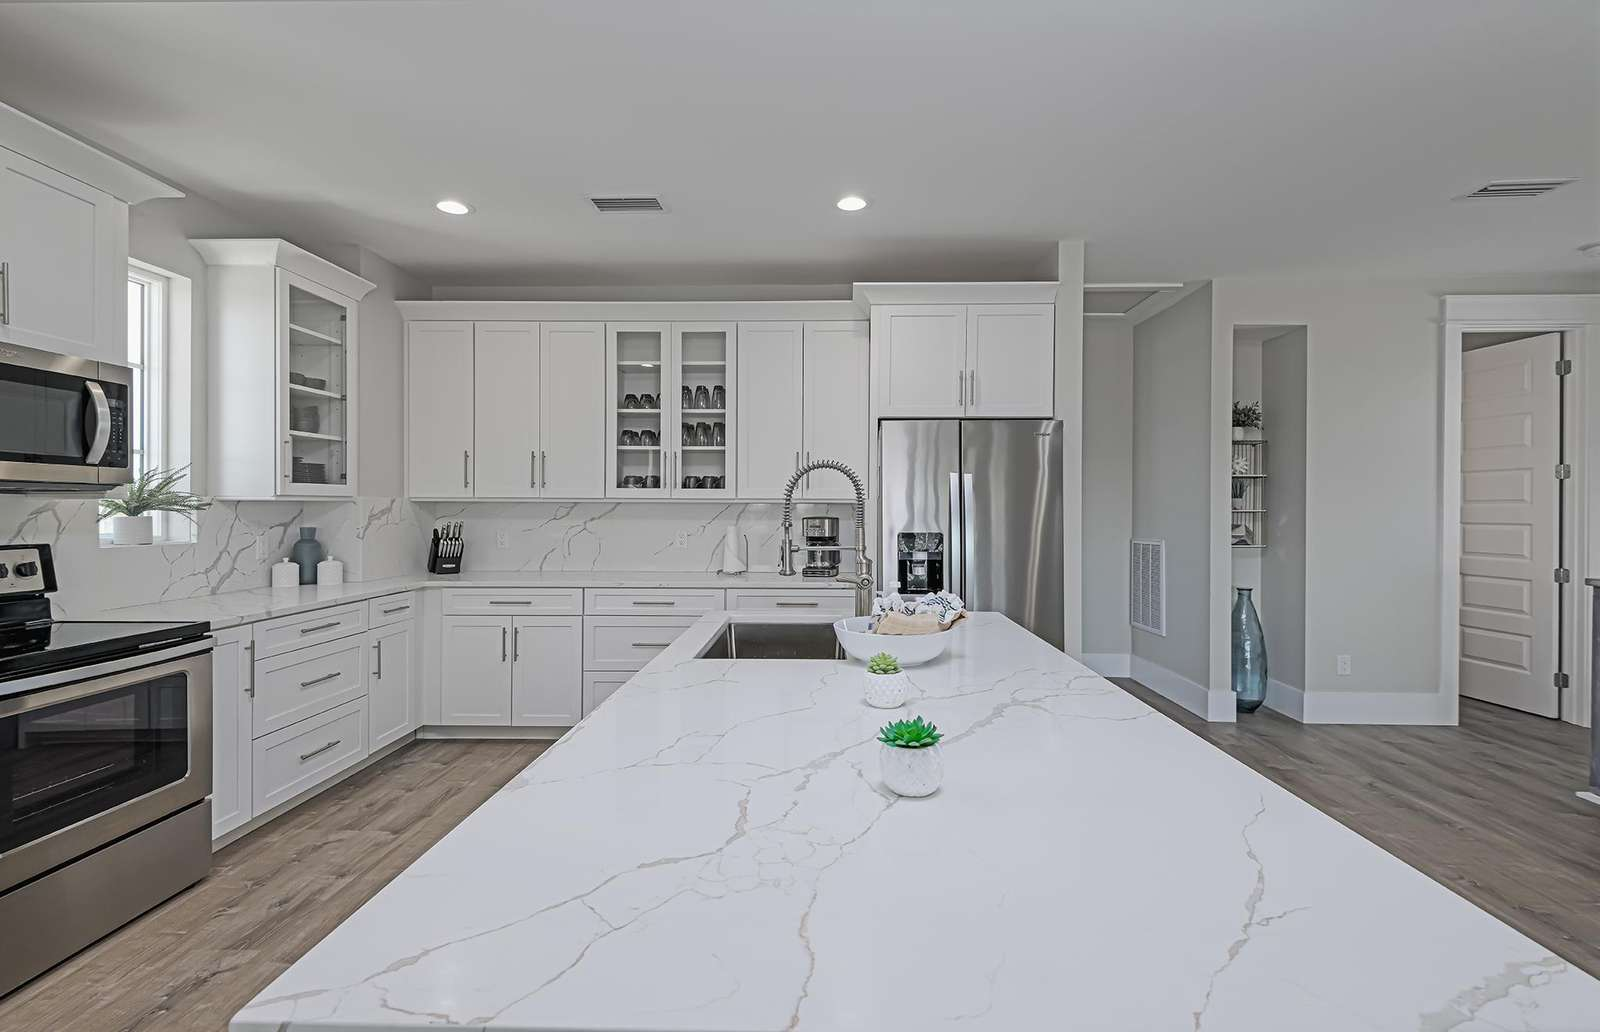 Stocked kitchen for your basic needs!